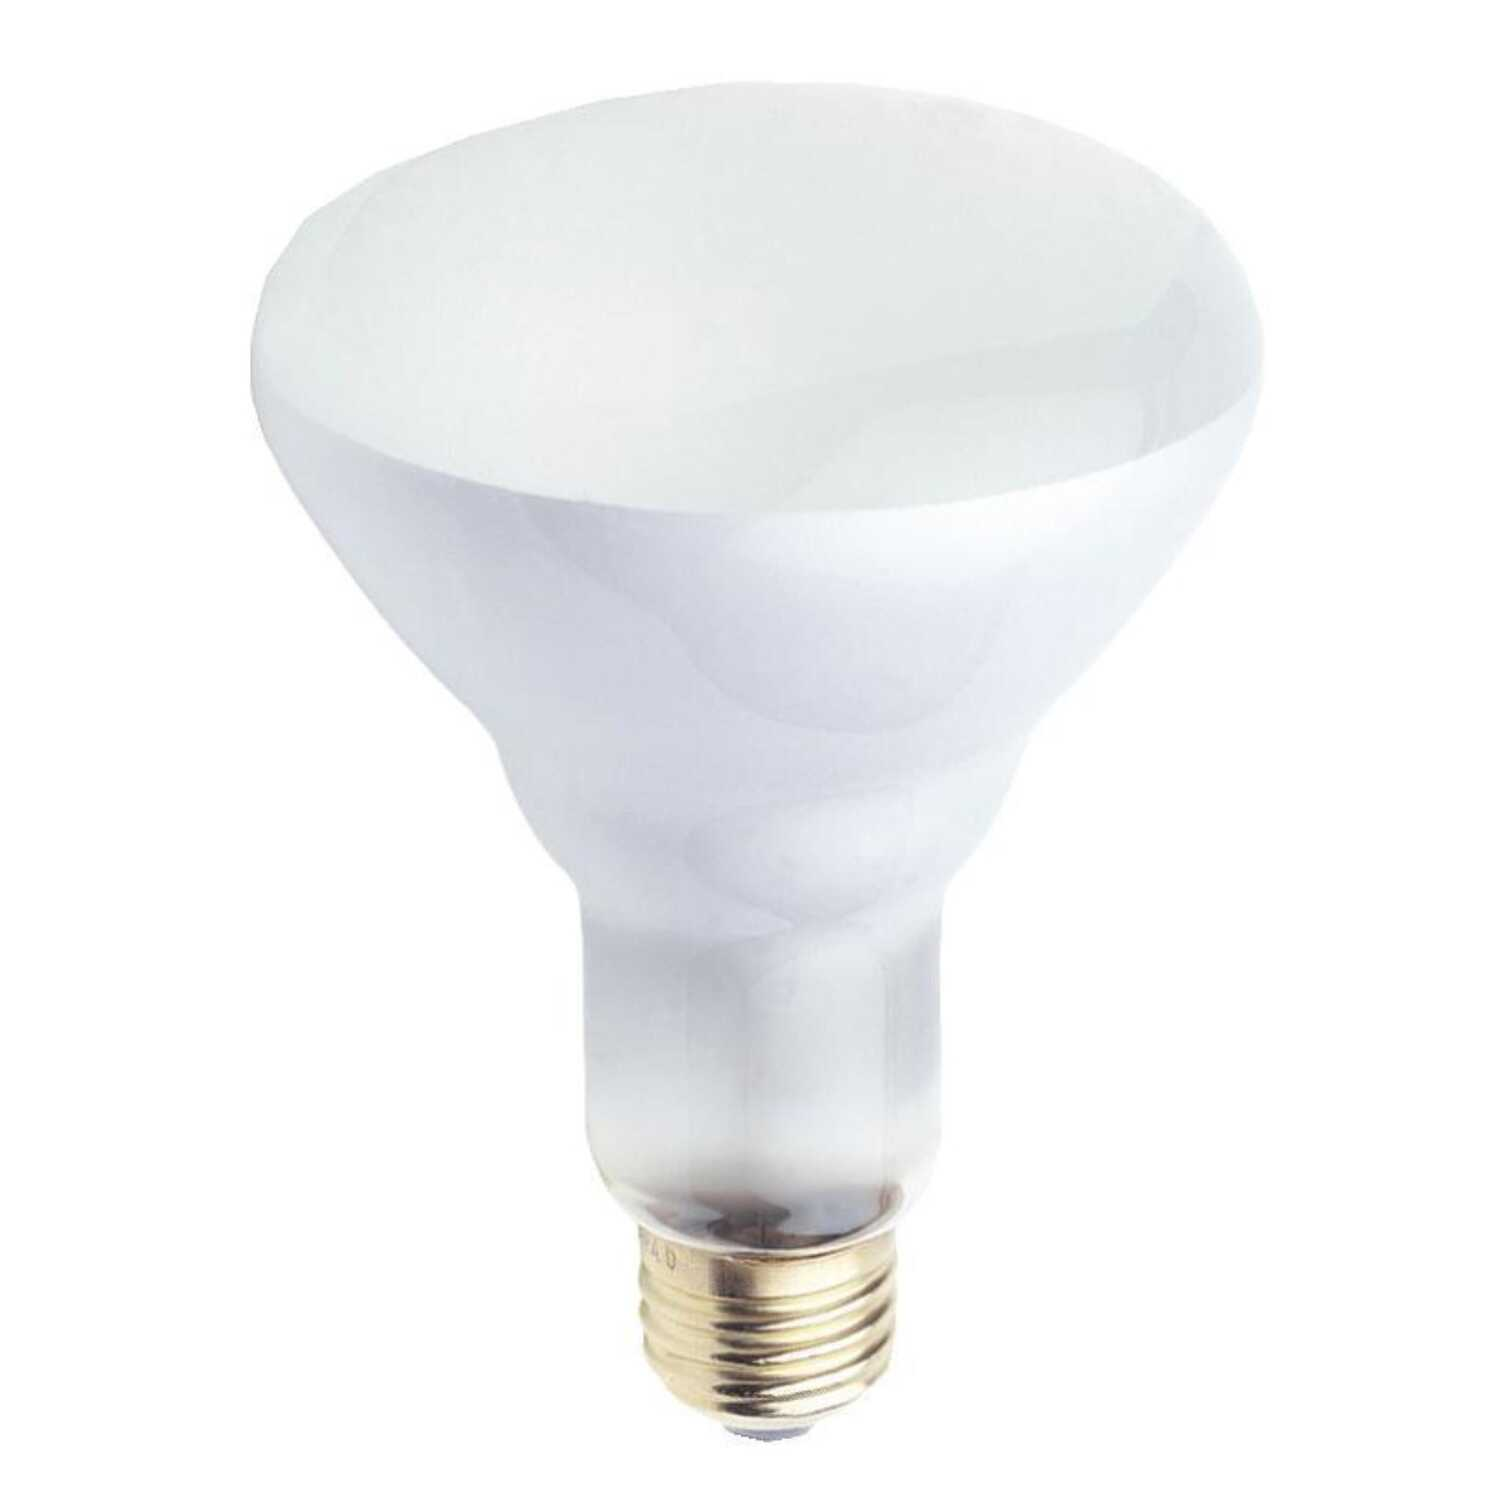 Westinghouse  50 watts BR30  Incandescent Bulb  400 lumens White  Floodlight  1 pk